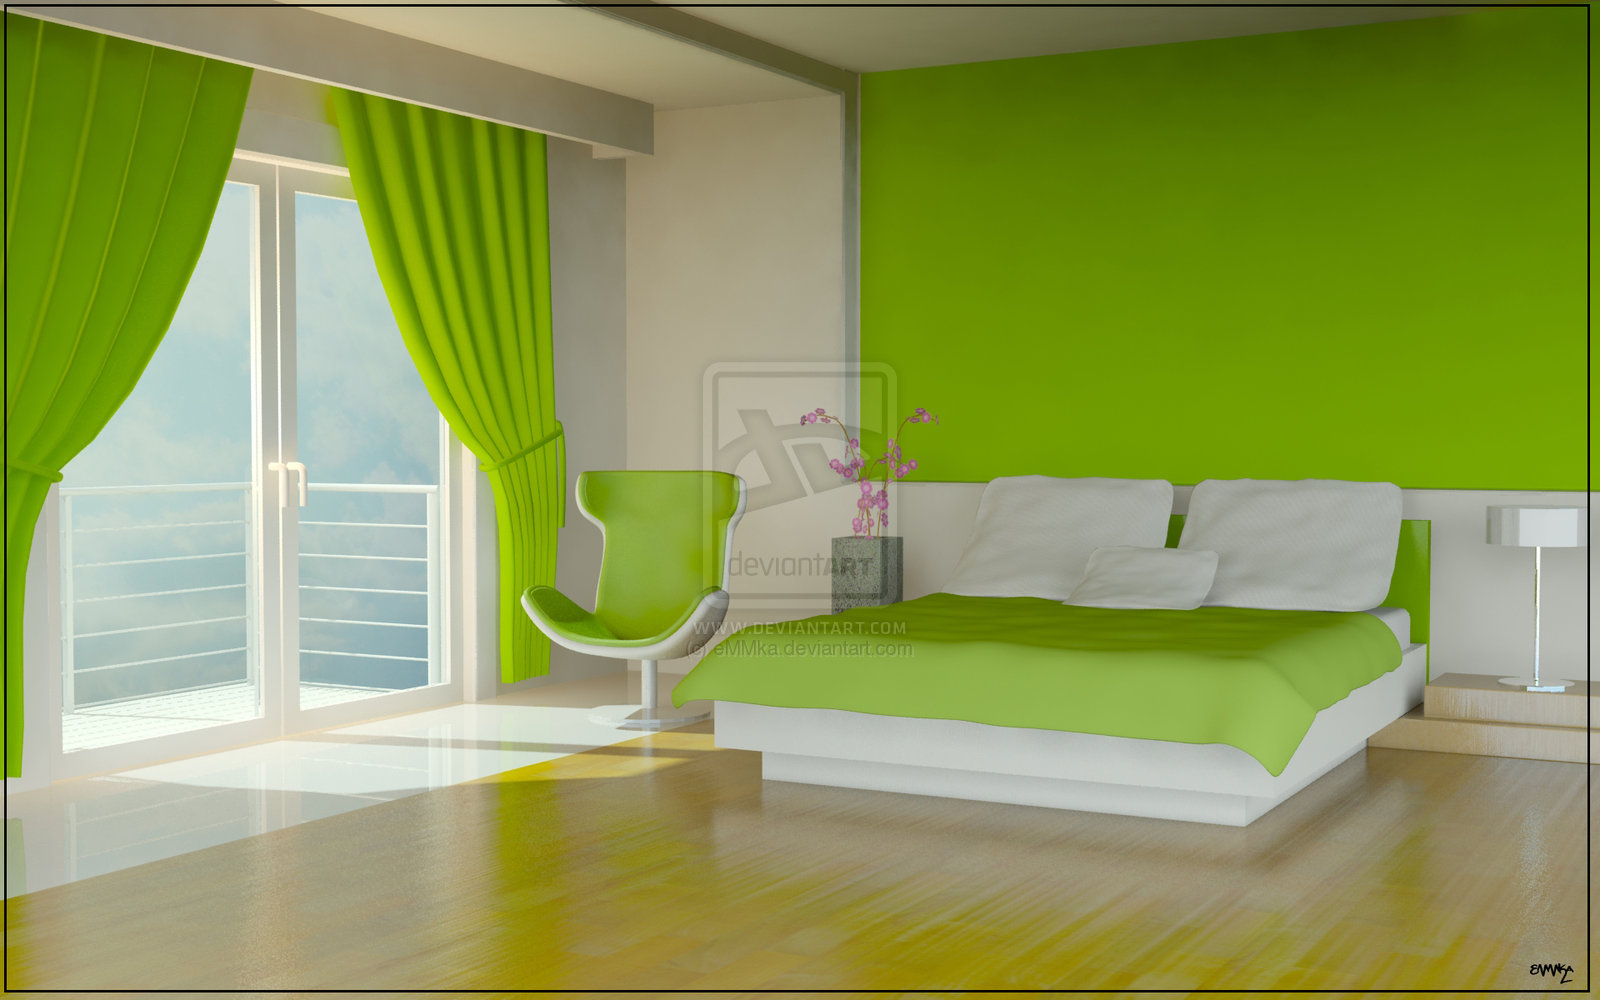 Bedroom color ideas Photo - 1